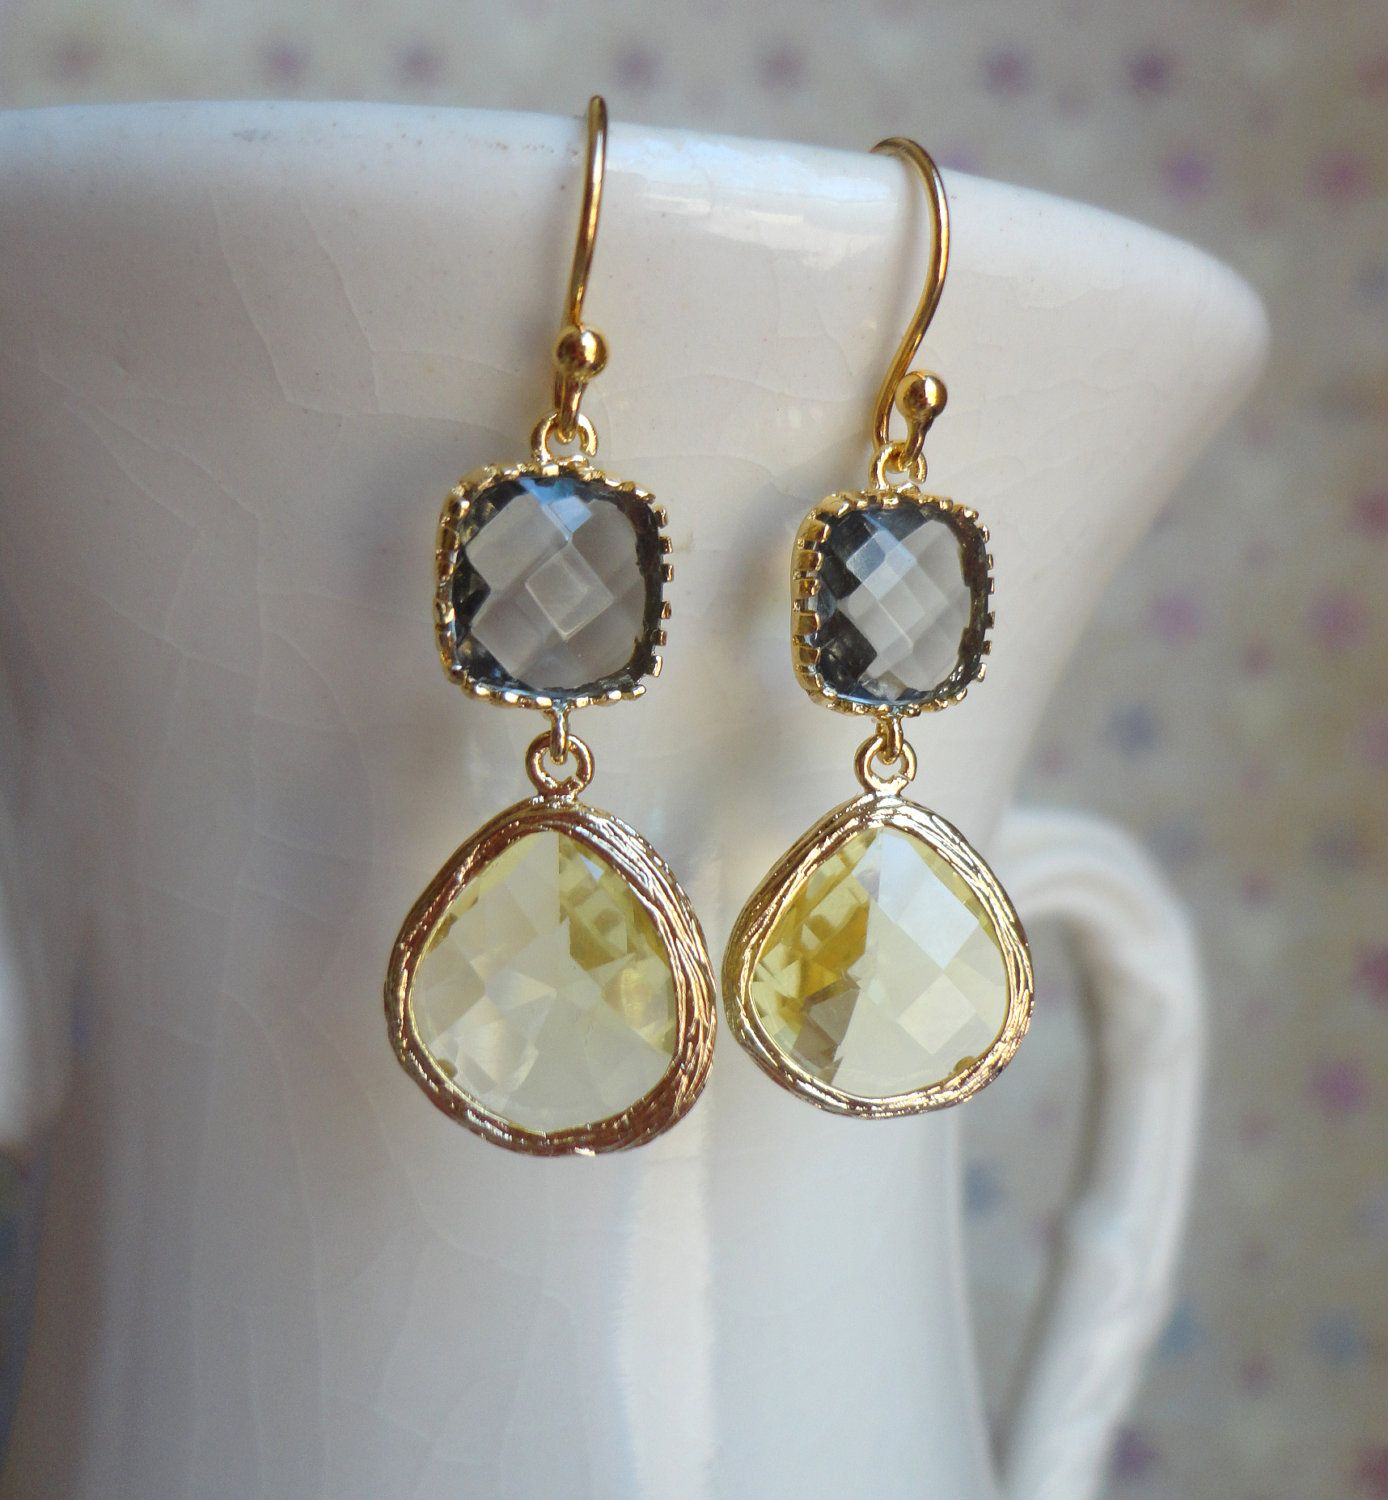 Grey Colour Earrings: Gorgeous Yellow And Gray Glass Dangle Earrings. Color